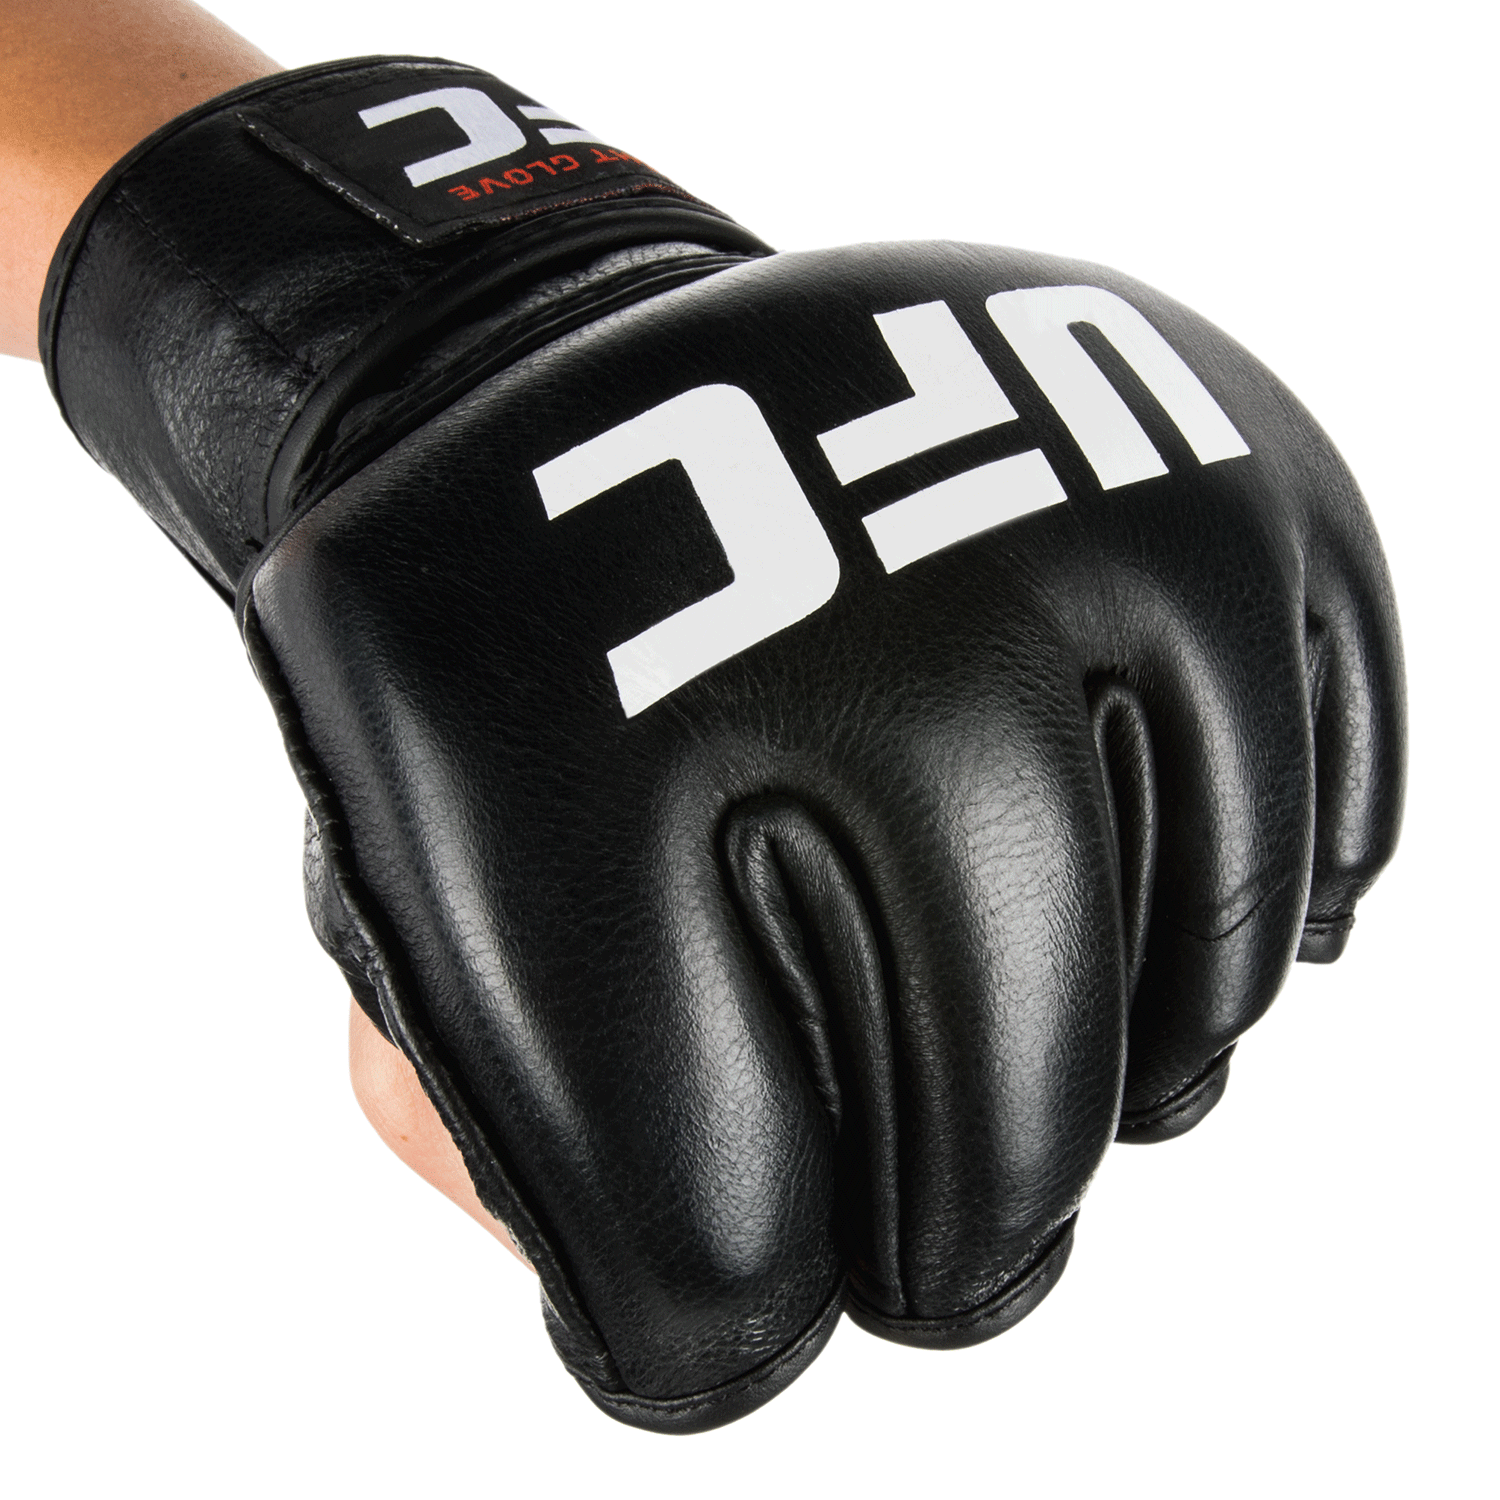 Official-Pro-Fight-Glove_bk-5.png